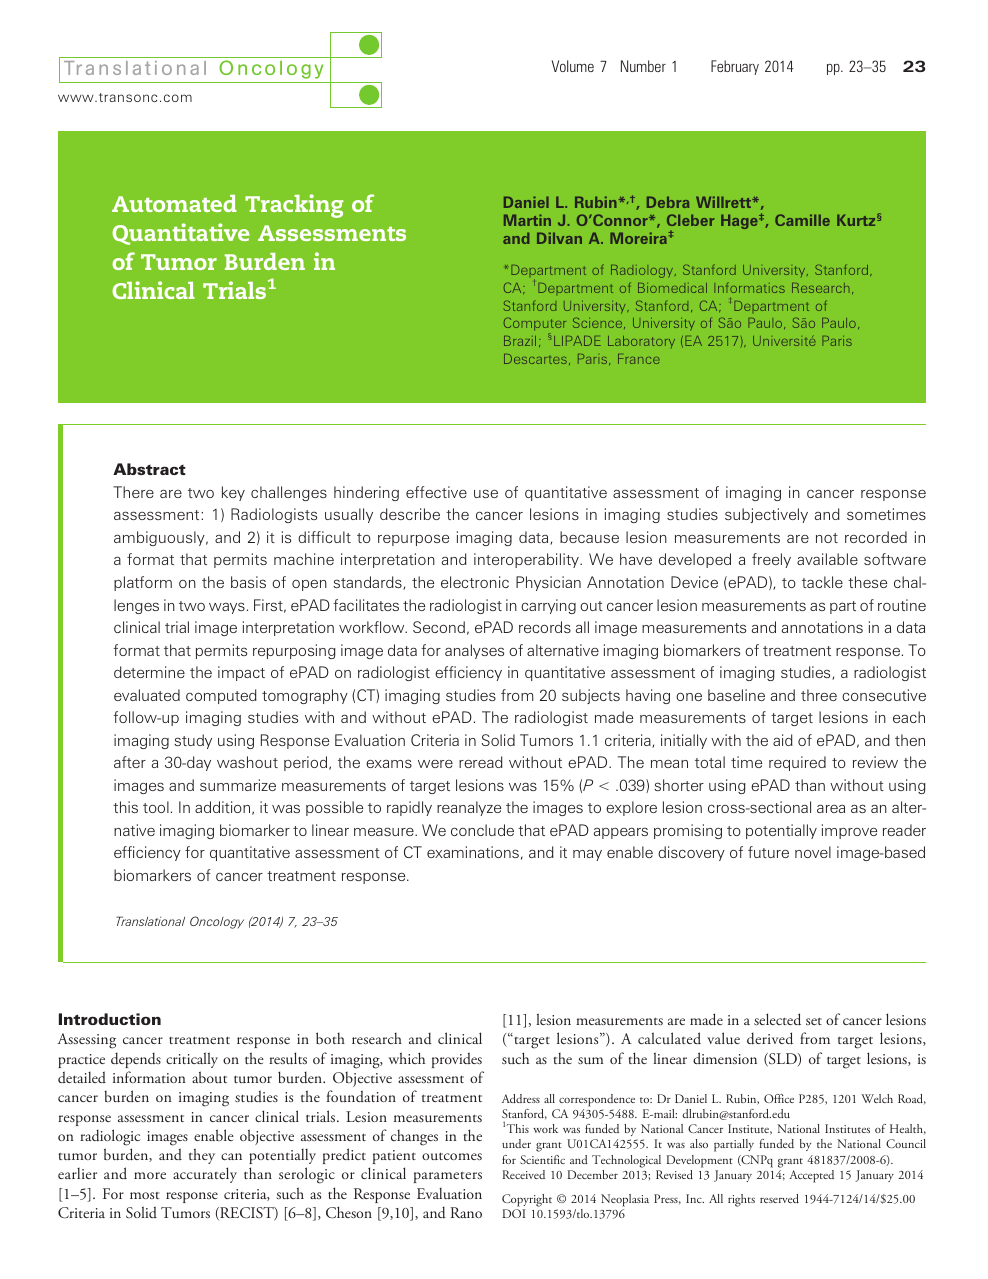 Automated Tracking of Quantitative Assessments of Tumor Burden in